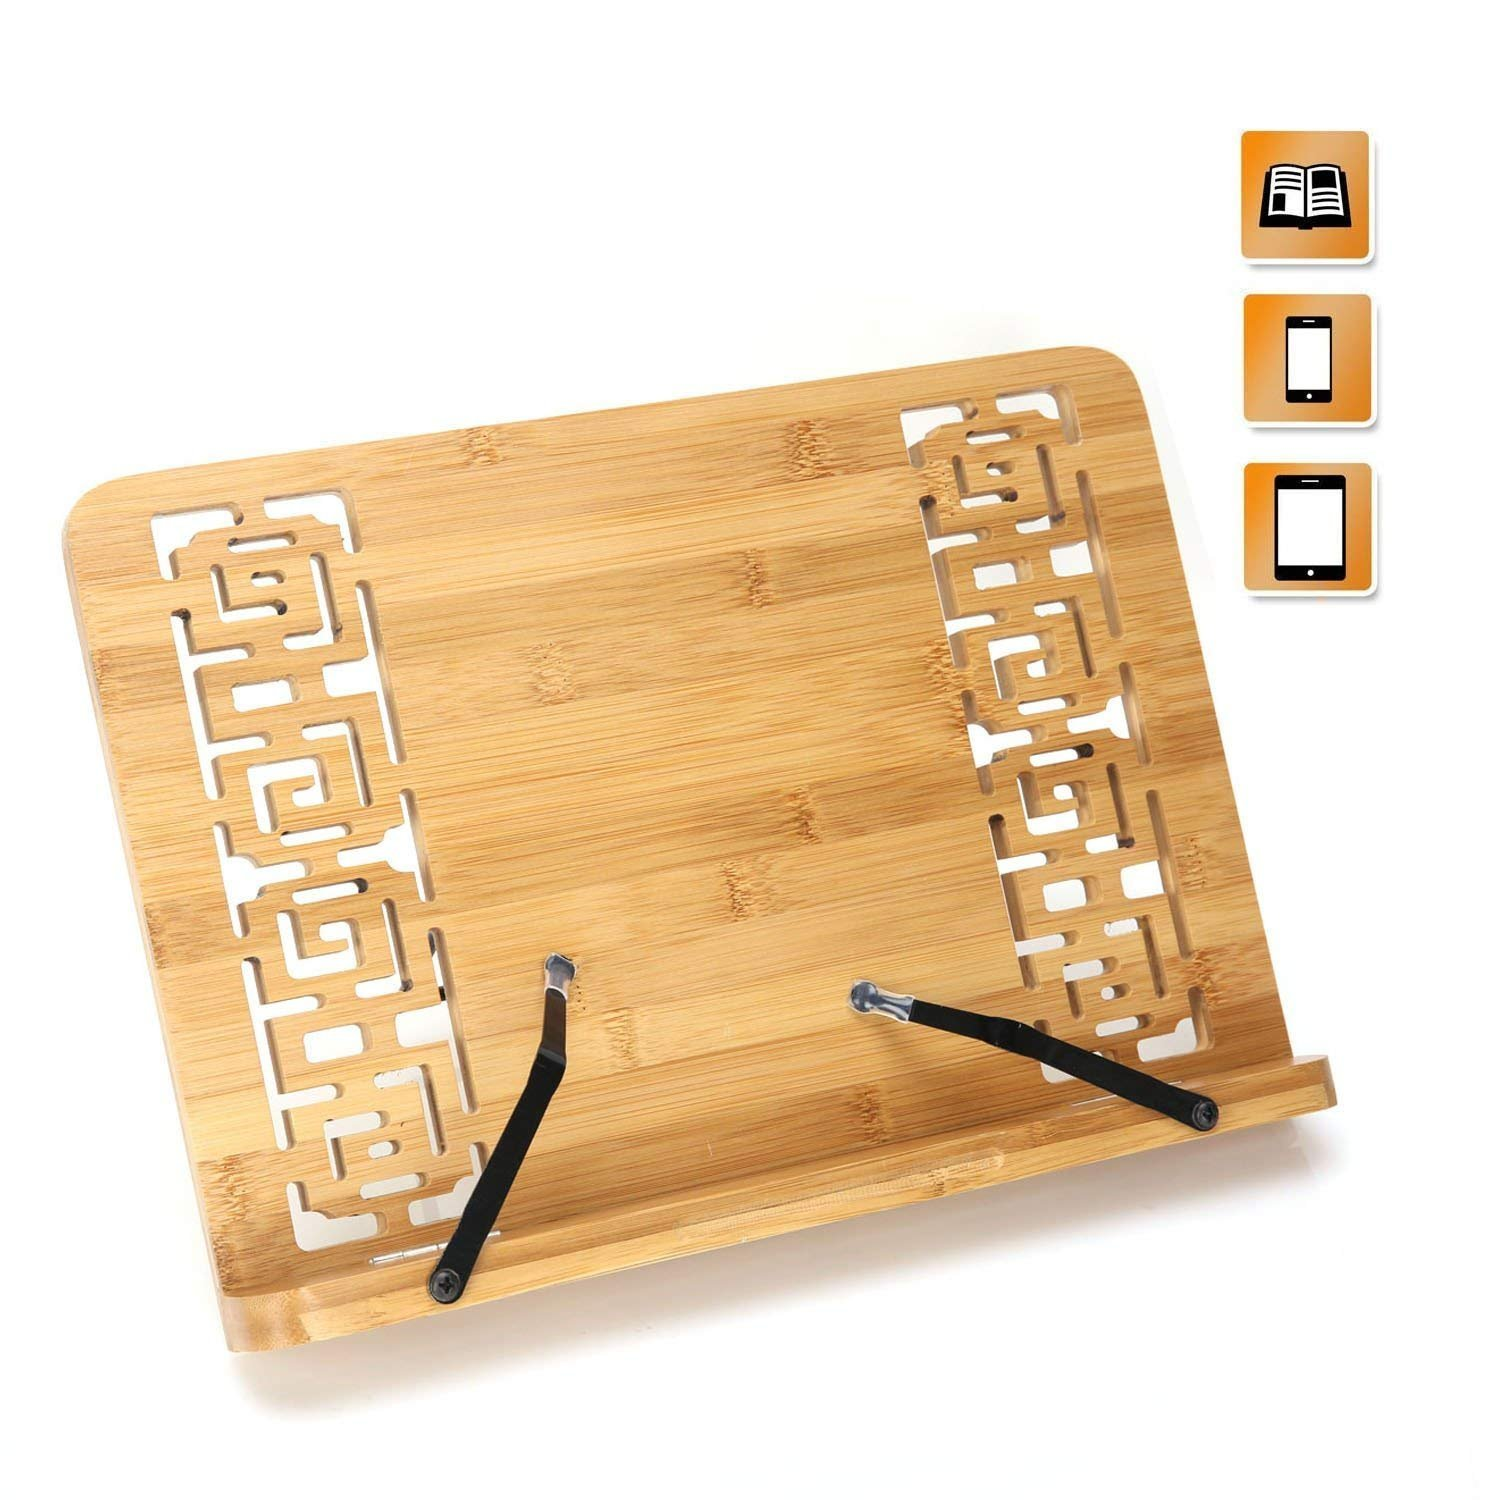 Bamboo Book Stands Cookbook Holder Books Rest Reading Stands Tablet Foldable Tray Page Paper Clips